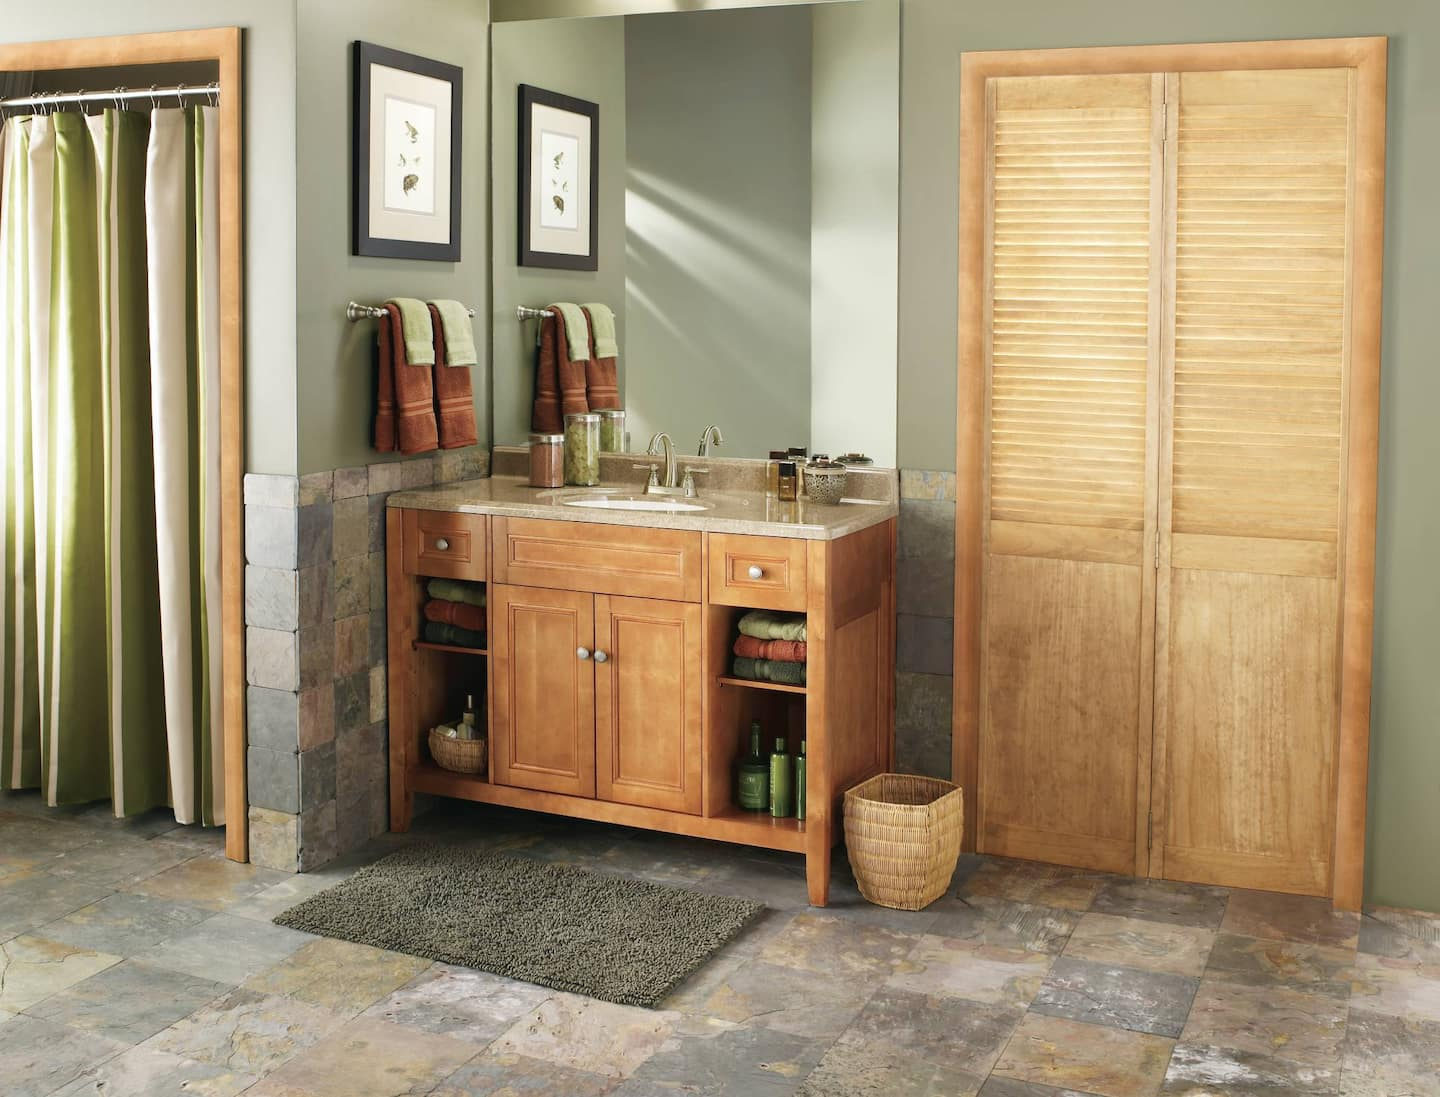 Top Best Asheville NC Home Remodeling Contractors Angies List - Bathroom remodel asheville nc